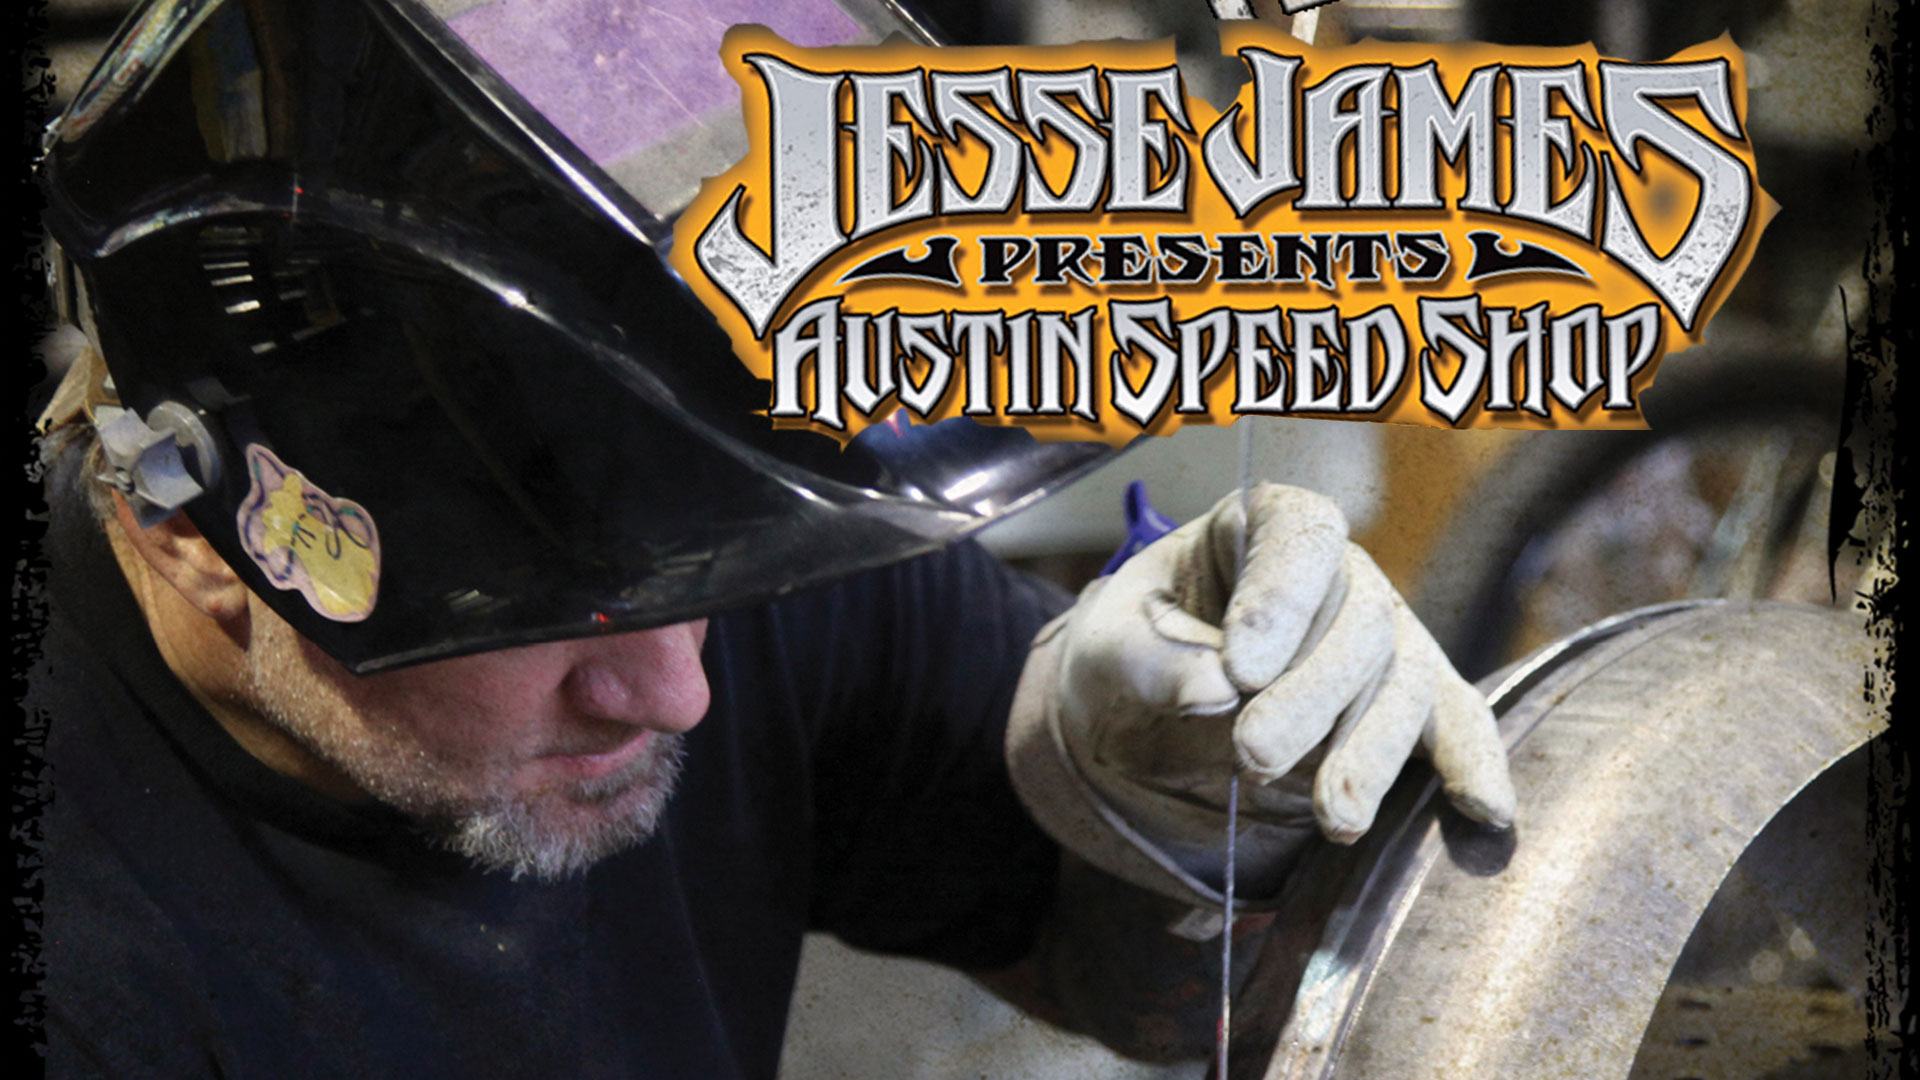 Jesse James Austin Speed Shop